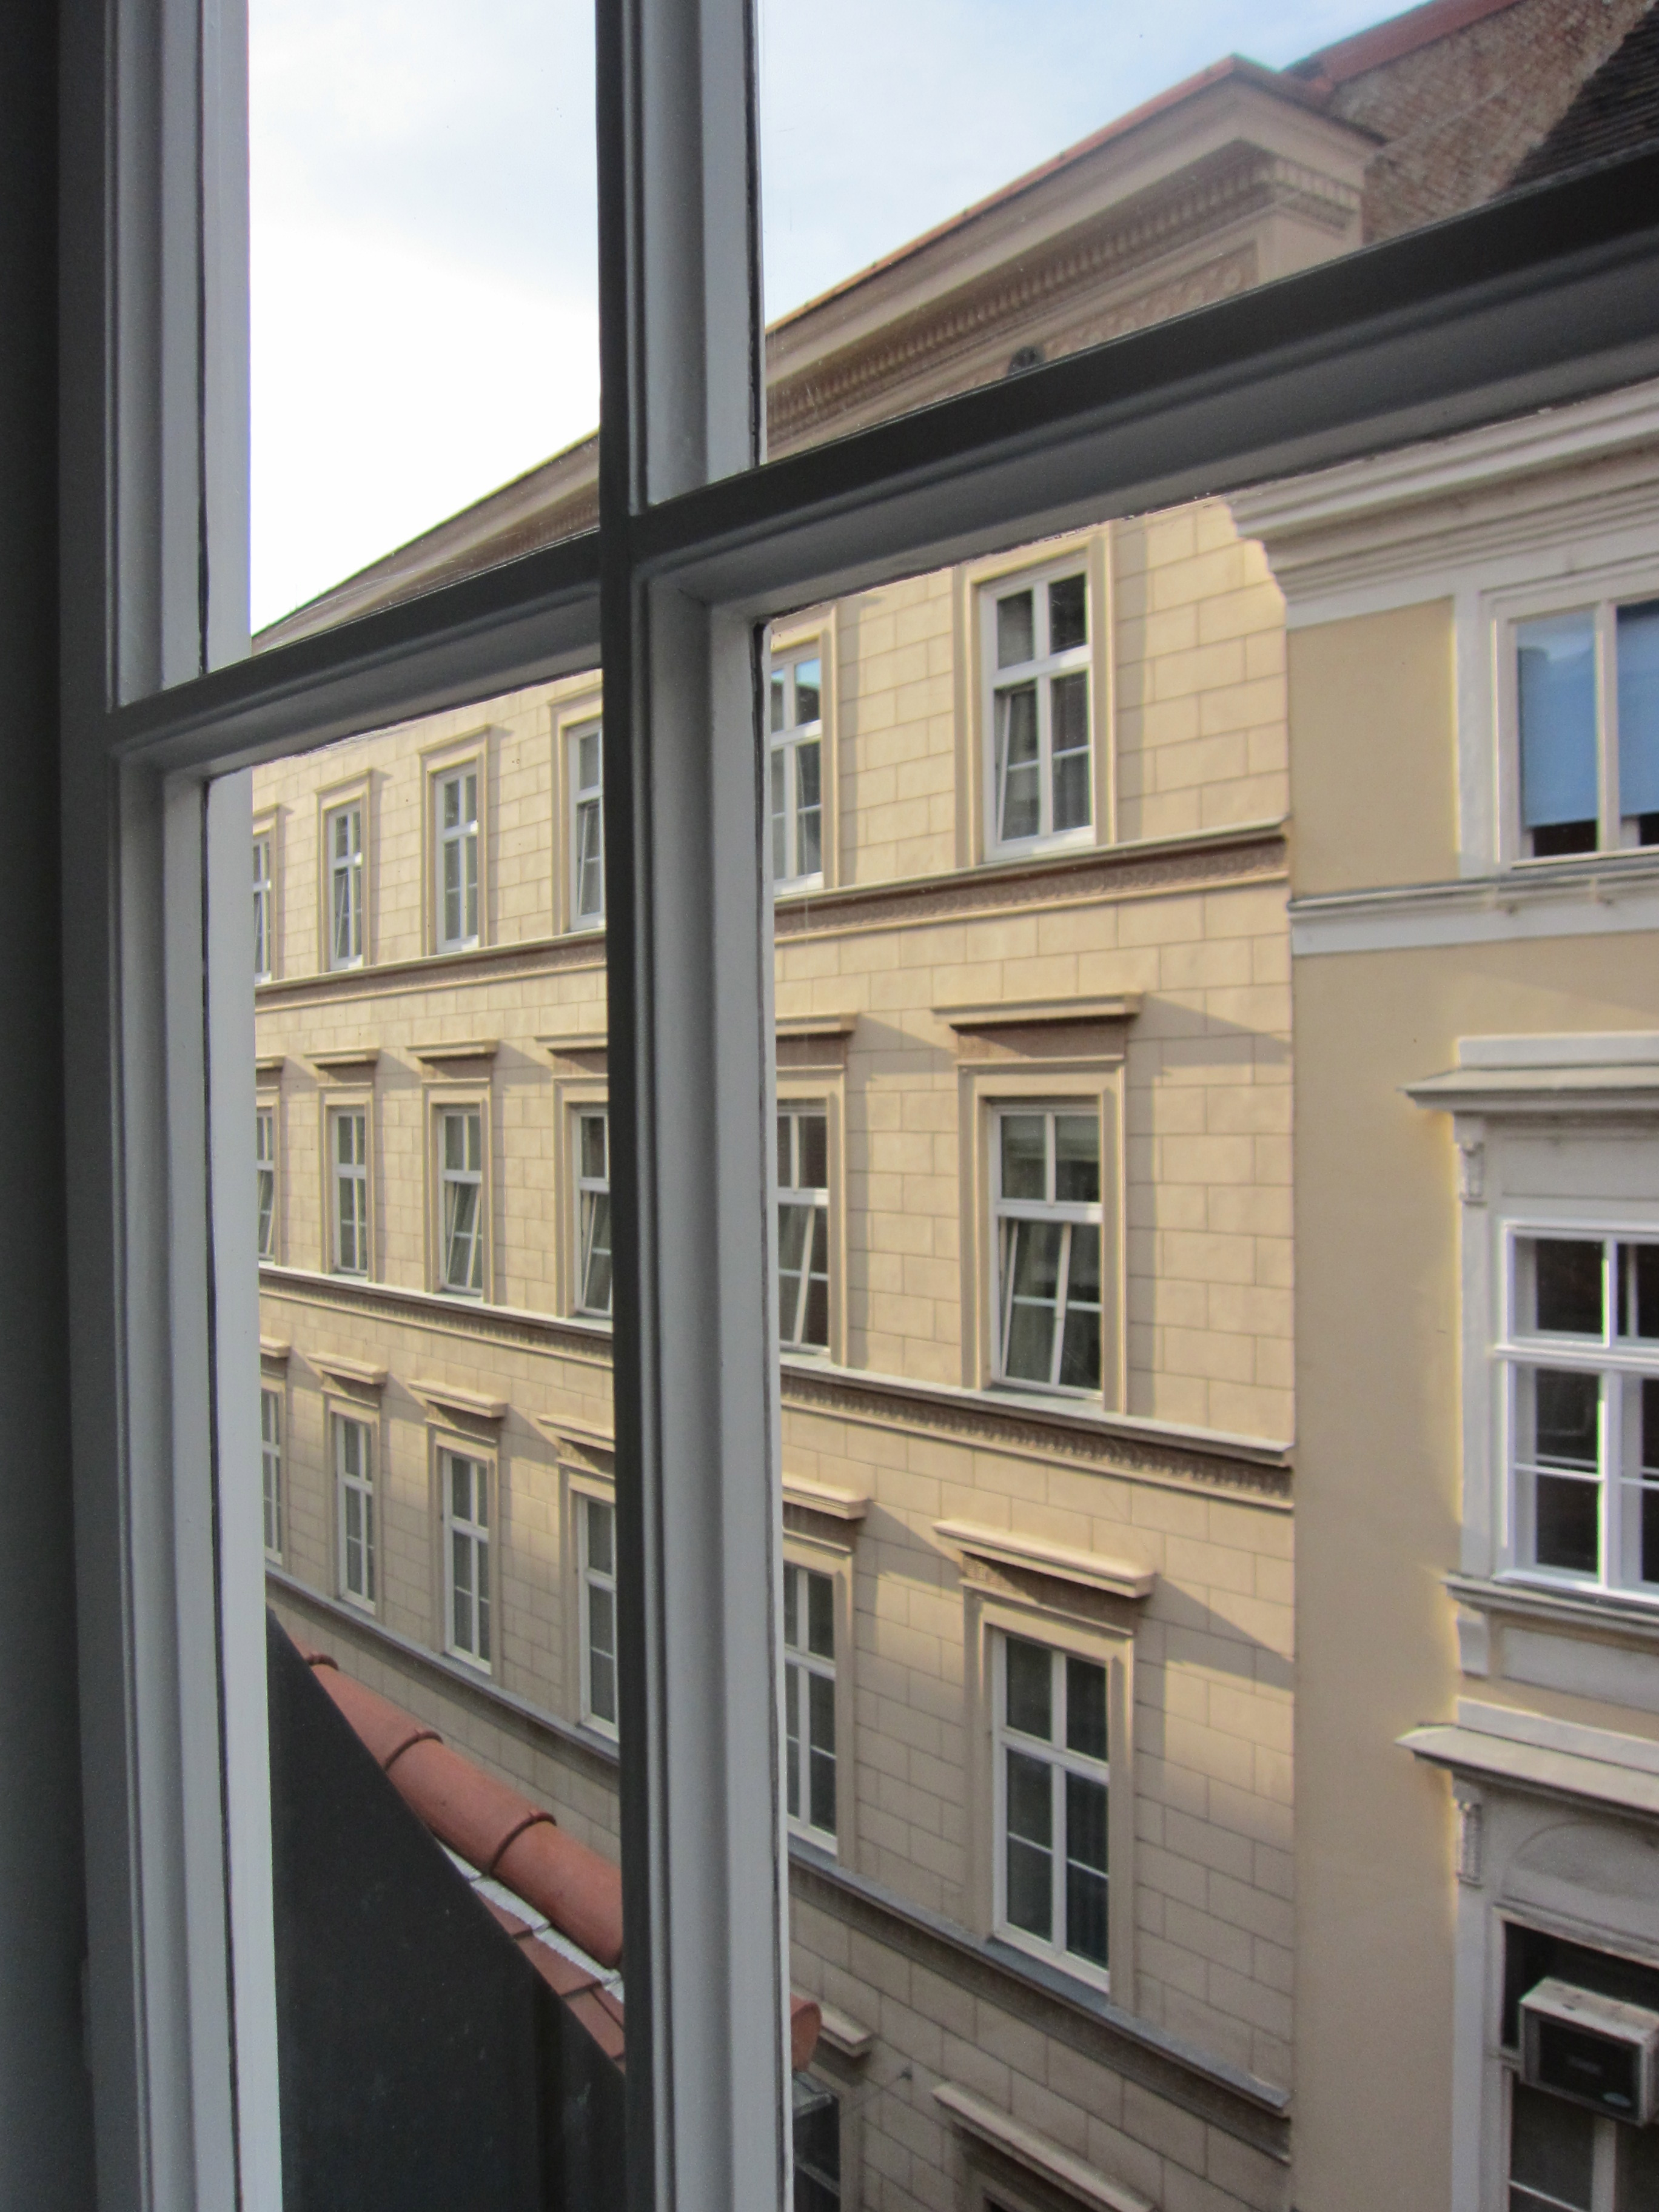 Window hotel konig von ungarn vienna austria just for Design hotel ungarn